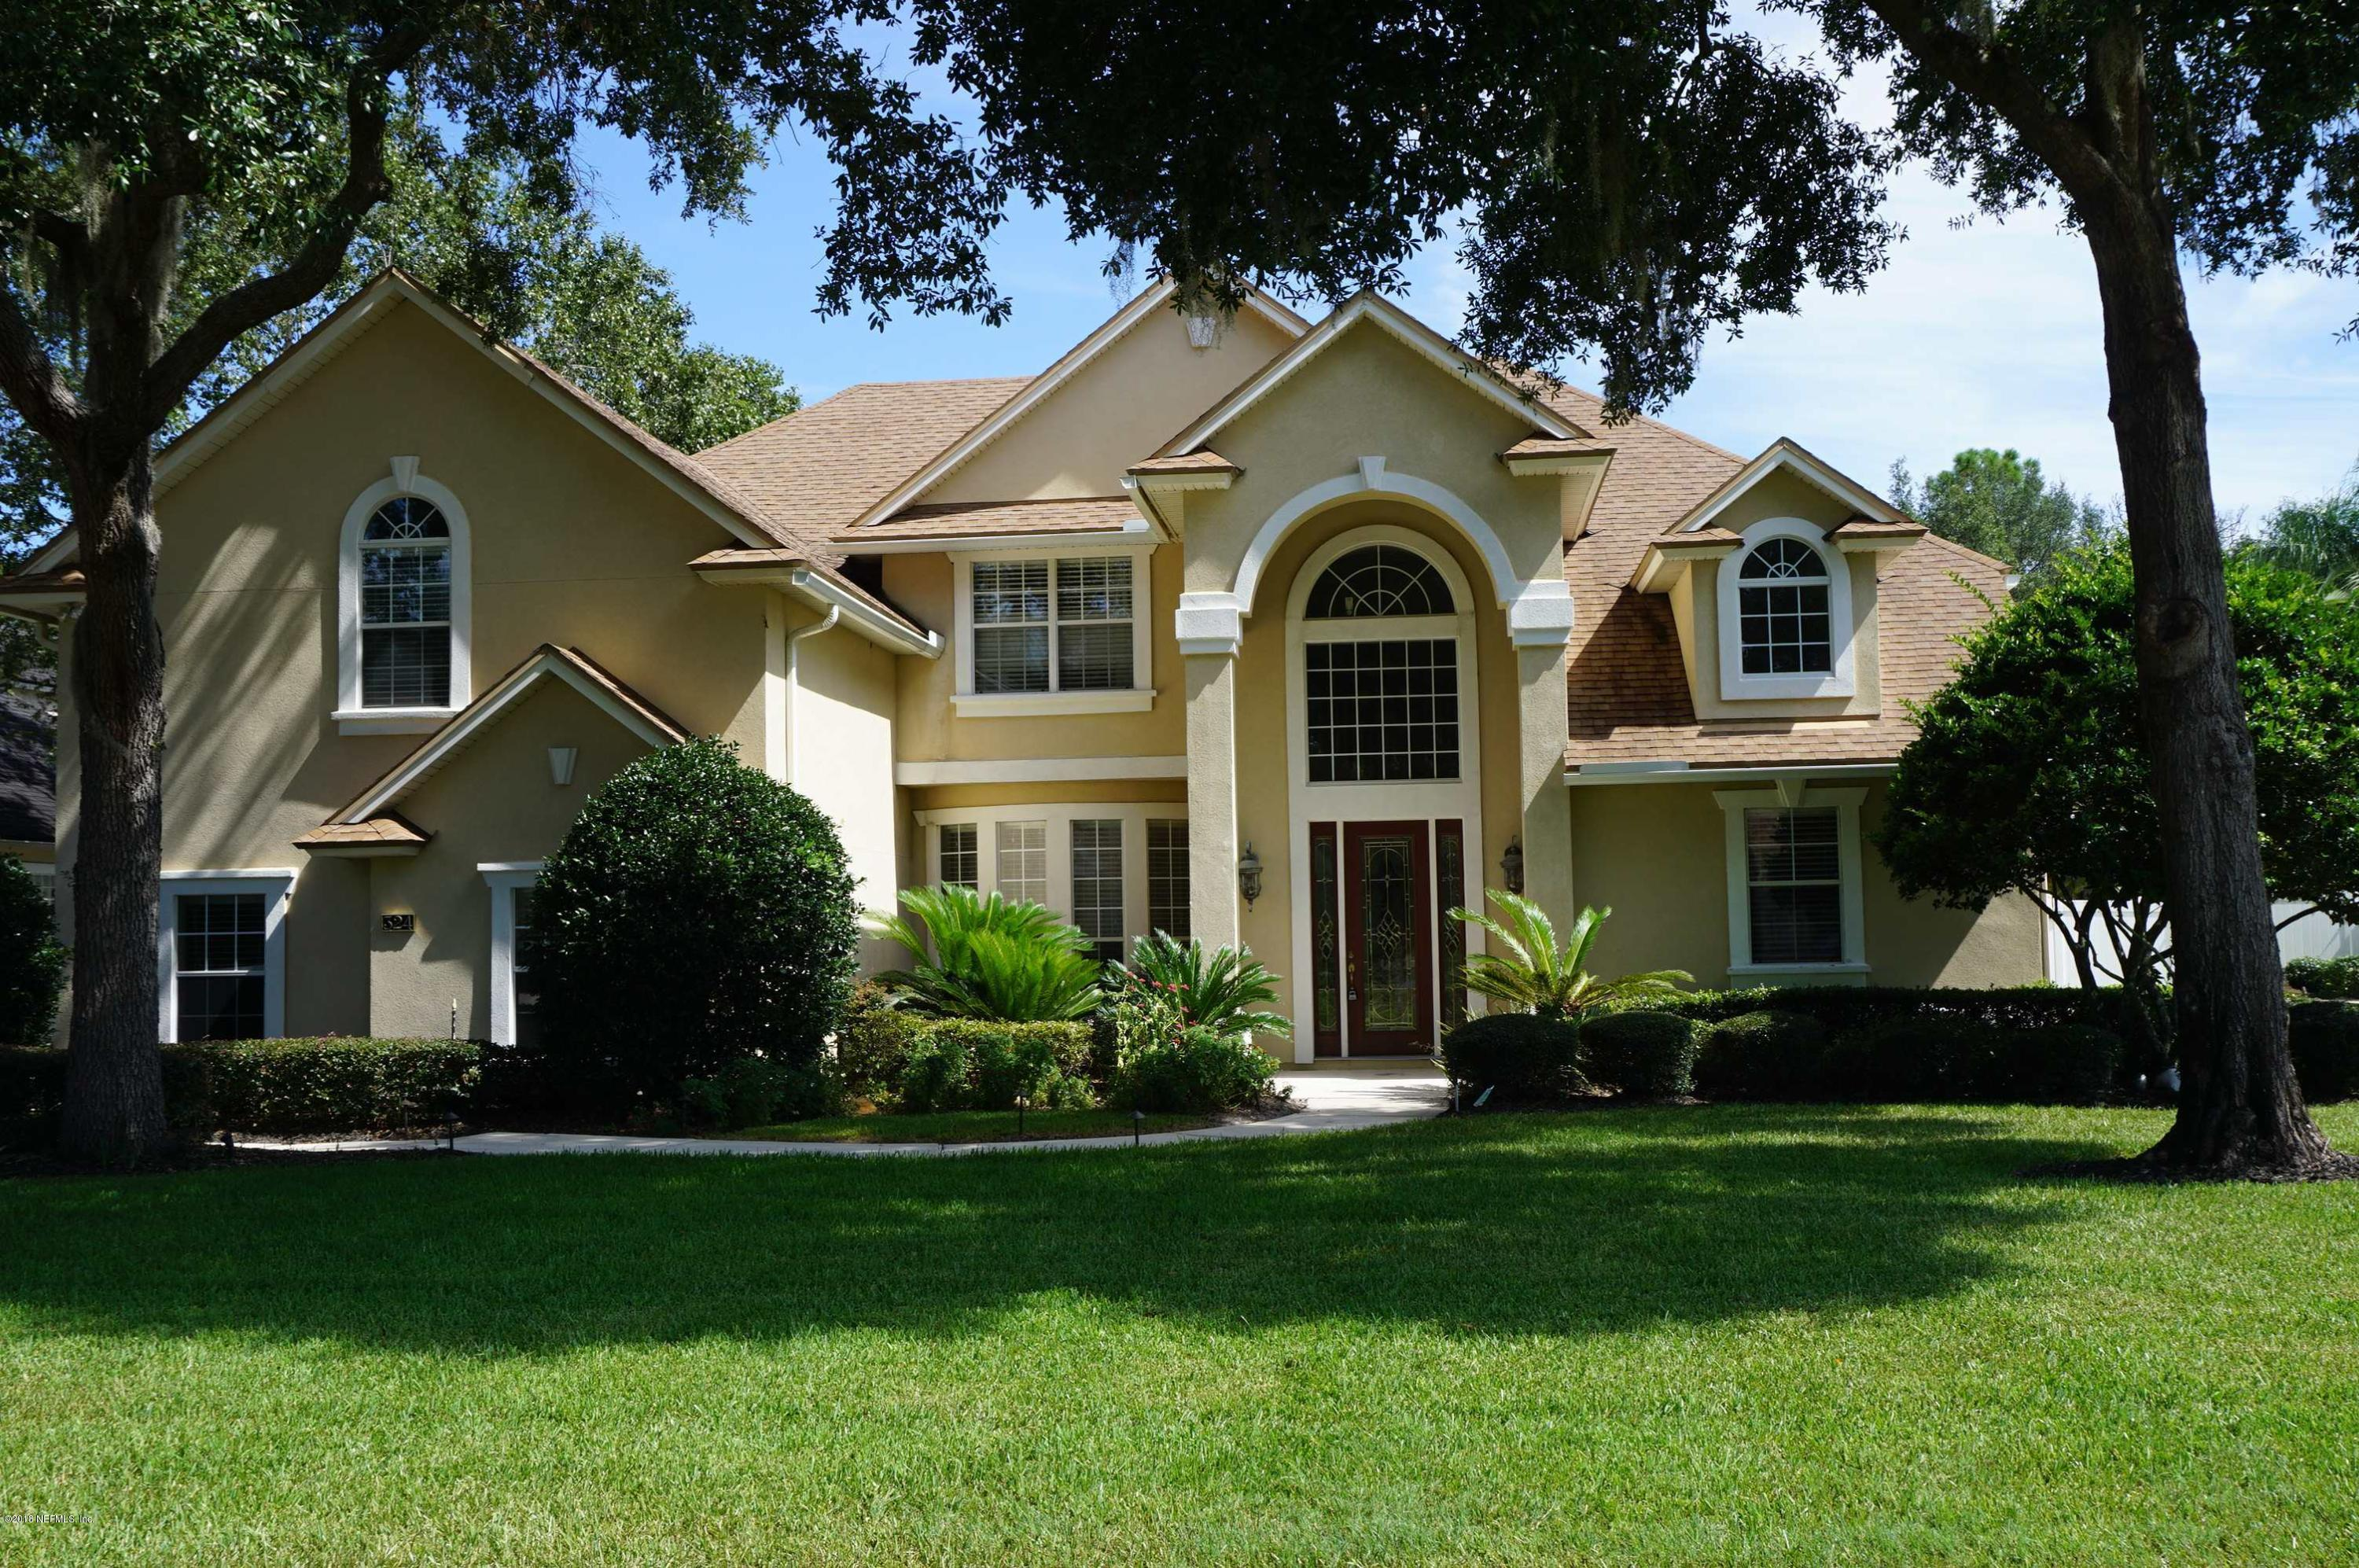 324 LOMBARDY, JACKSONVILLE, FLORIDA 32259, 5 Bedrooms Bedrooms, ,4 BathroomsBathrooms,Rental,For Rent,LOMBARDY,1022750